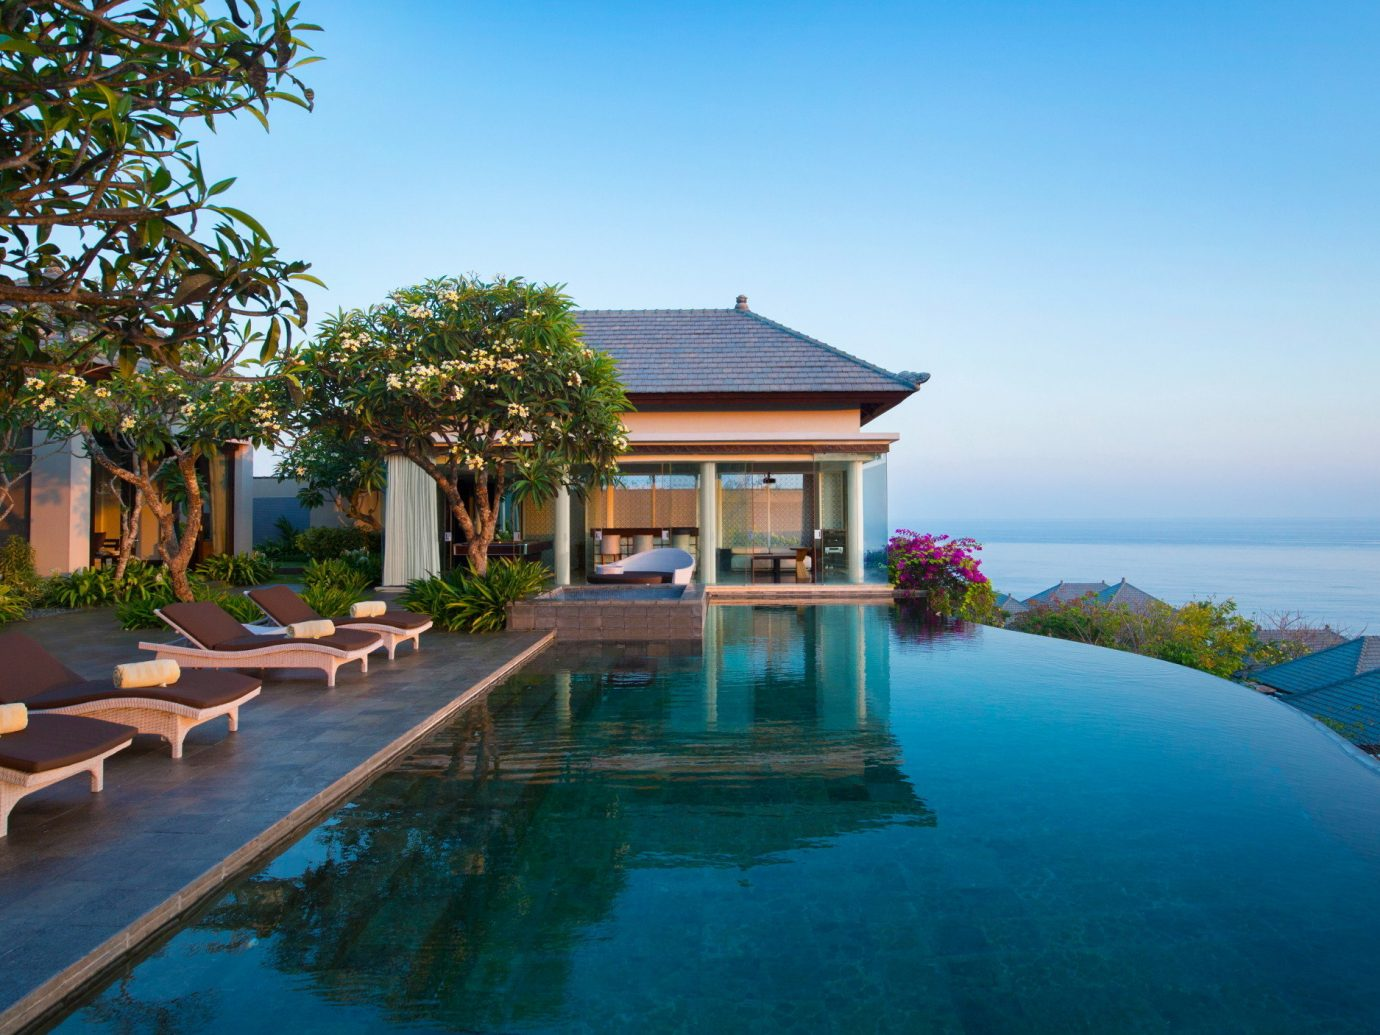 Hotels Jetsetter Guides Travel Tips Trip Ideas tree outdoor sky house water swimming pool property estate Resort leisure building Villa vacation home real estate mansion backyard condominium cottage residential